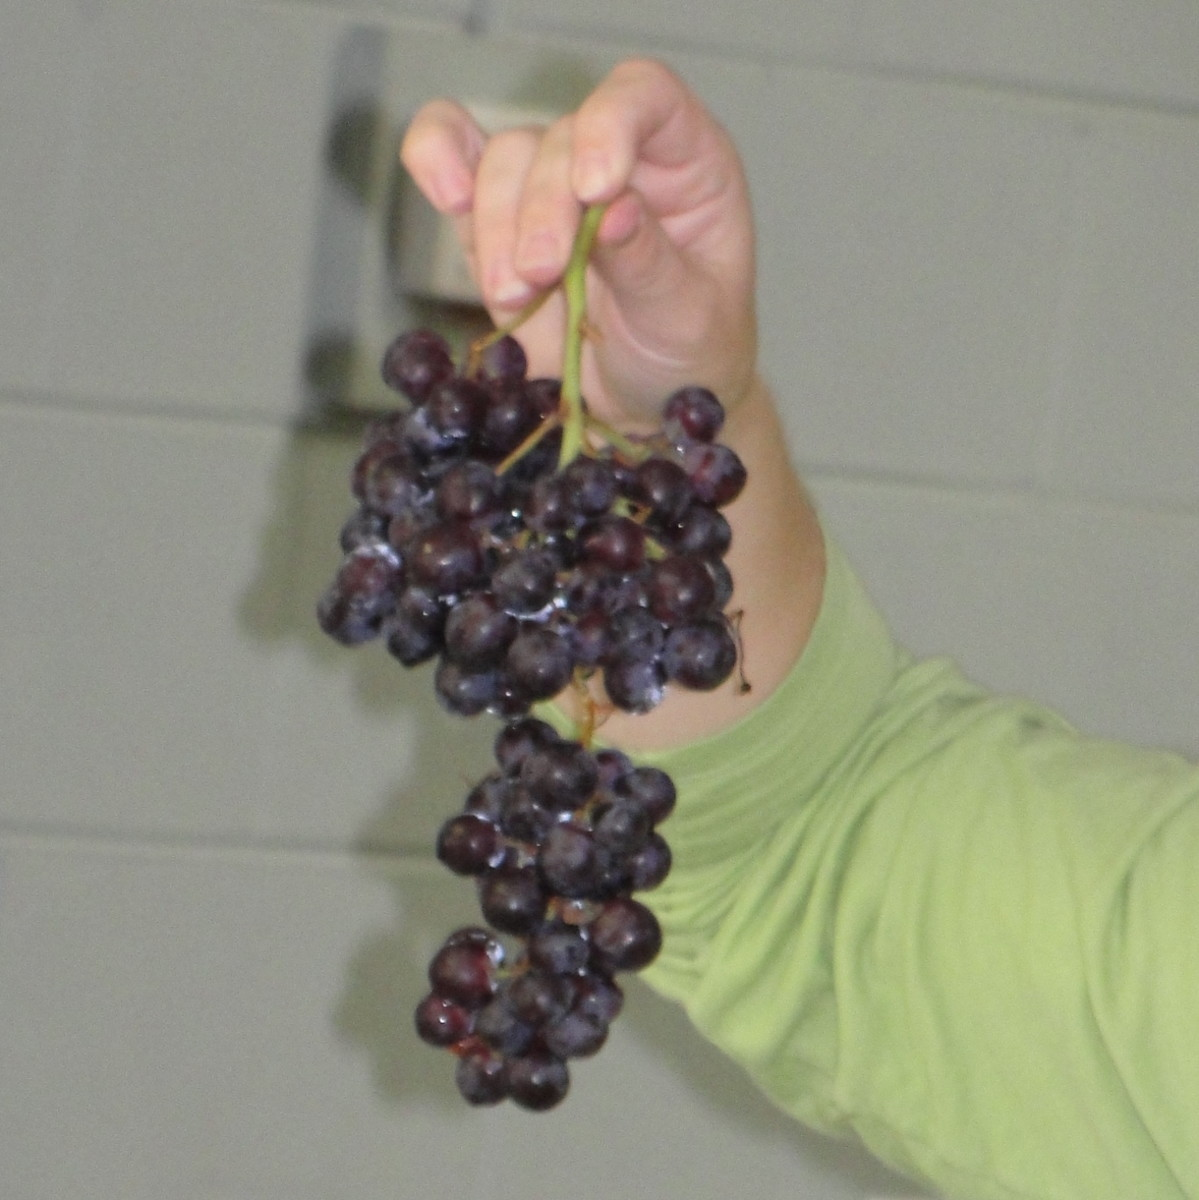 Grapes are our edible lung models.